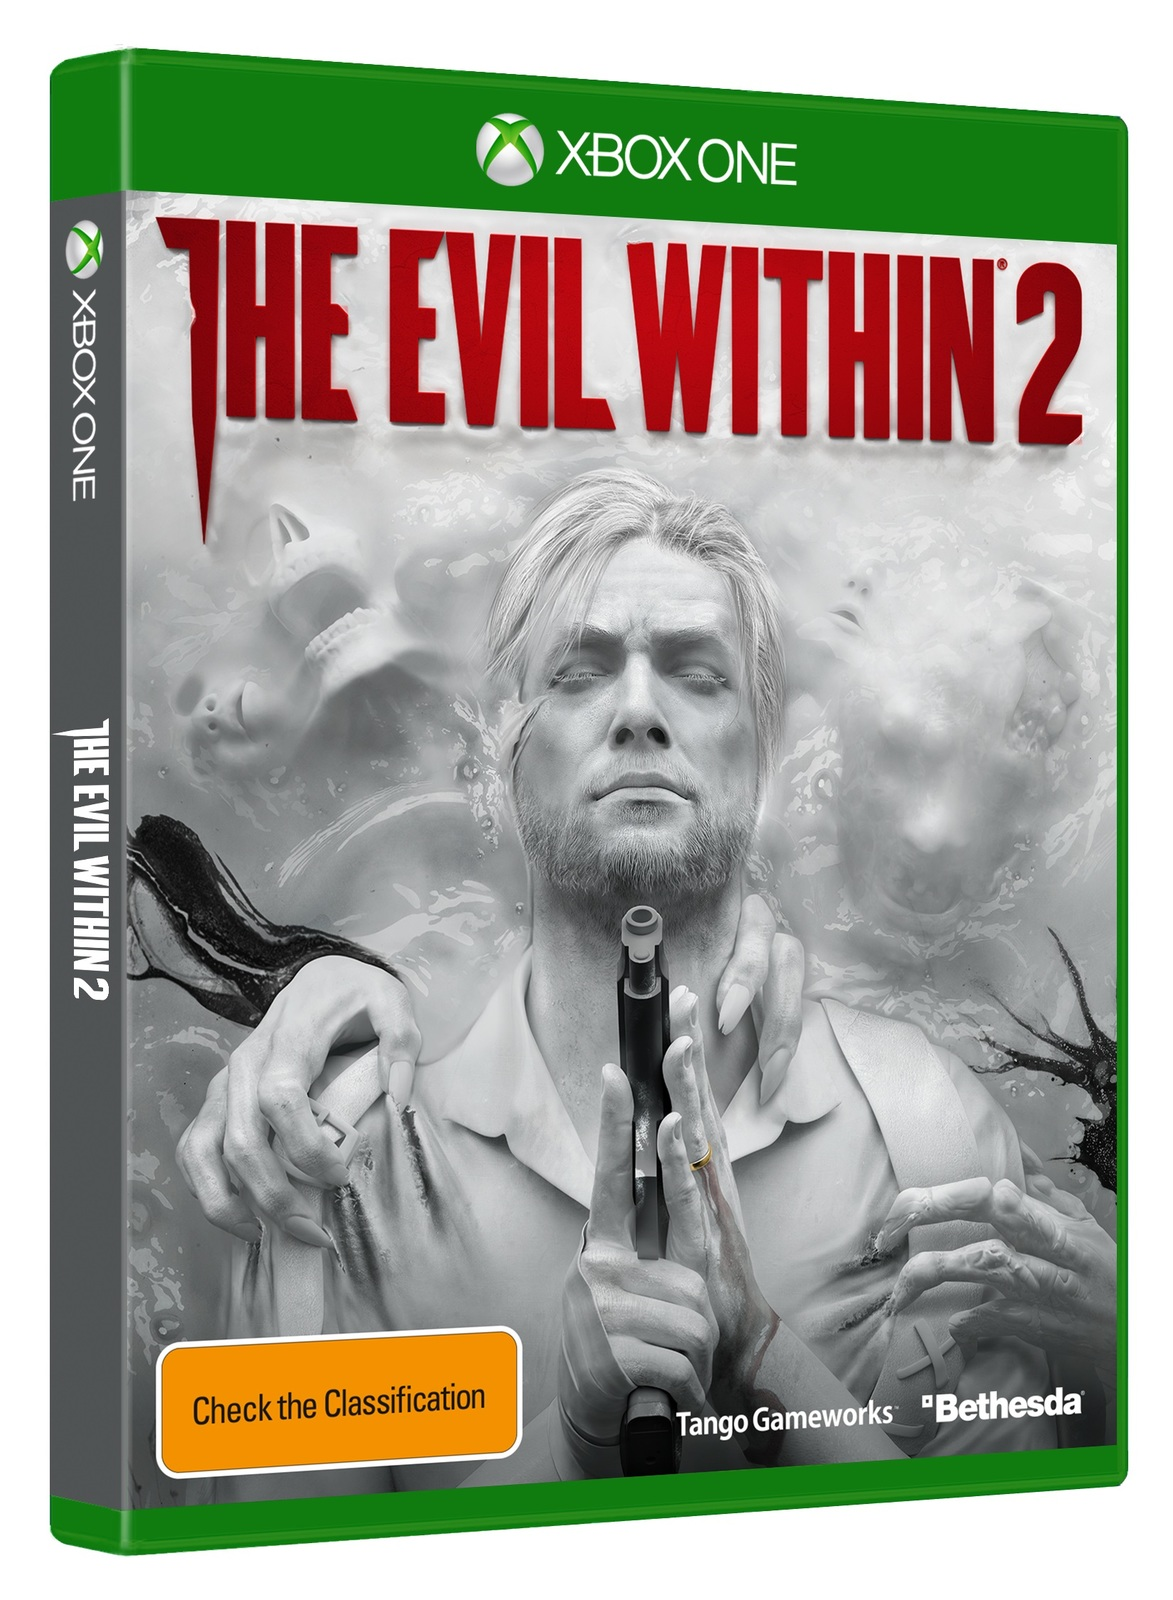 The Evil Within 2 for Xbox One image